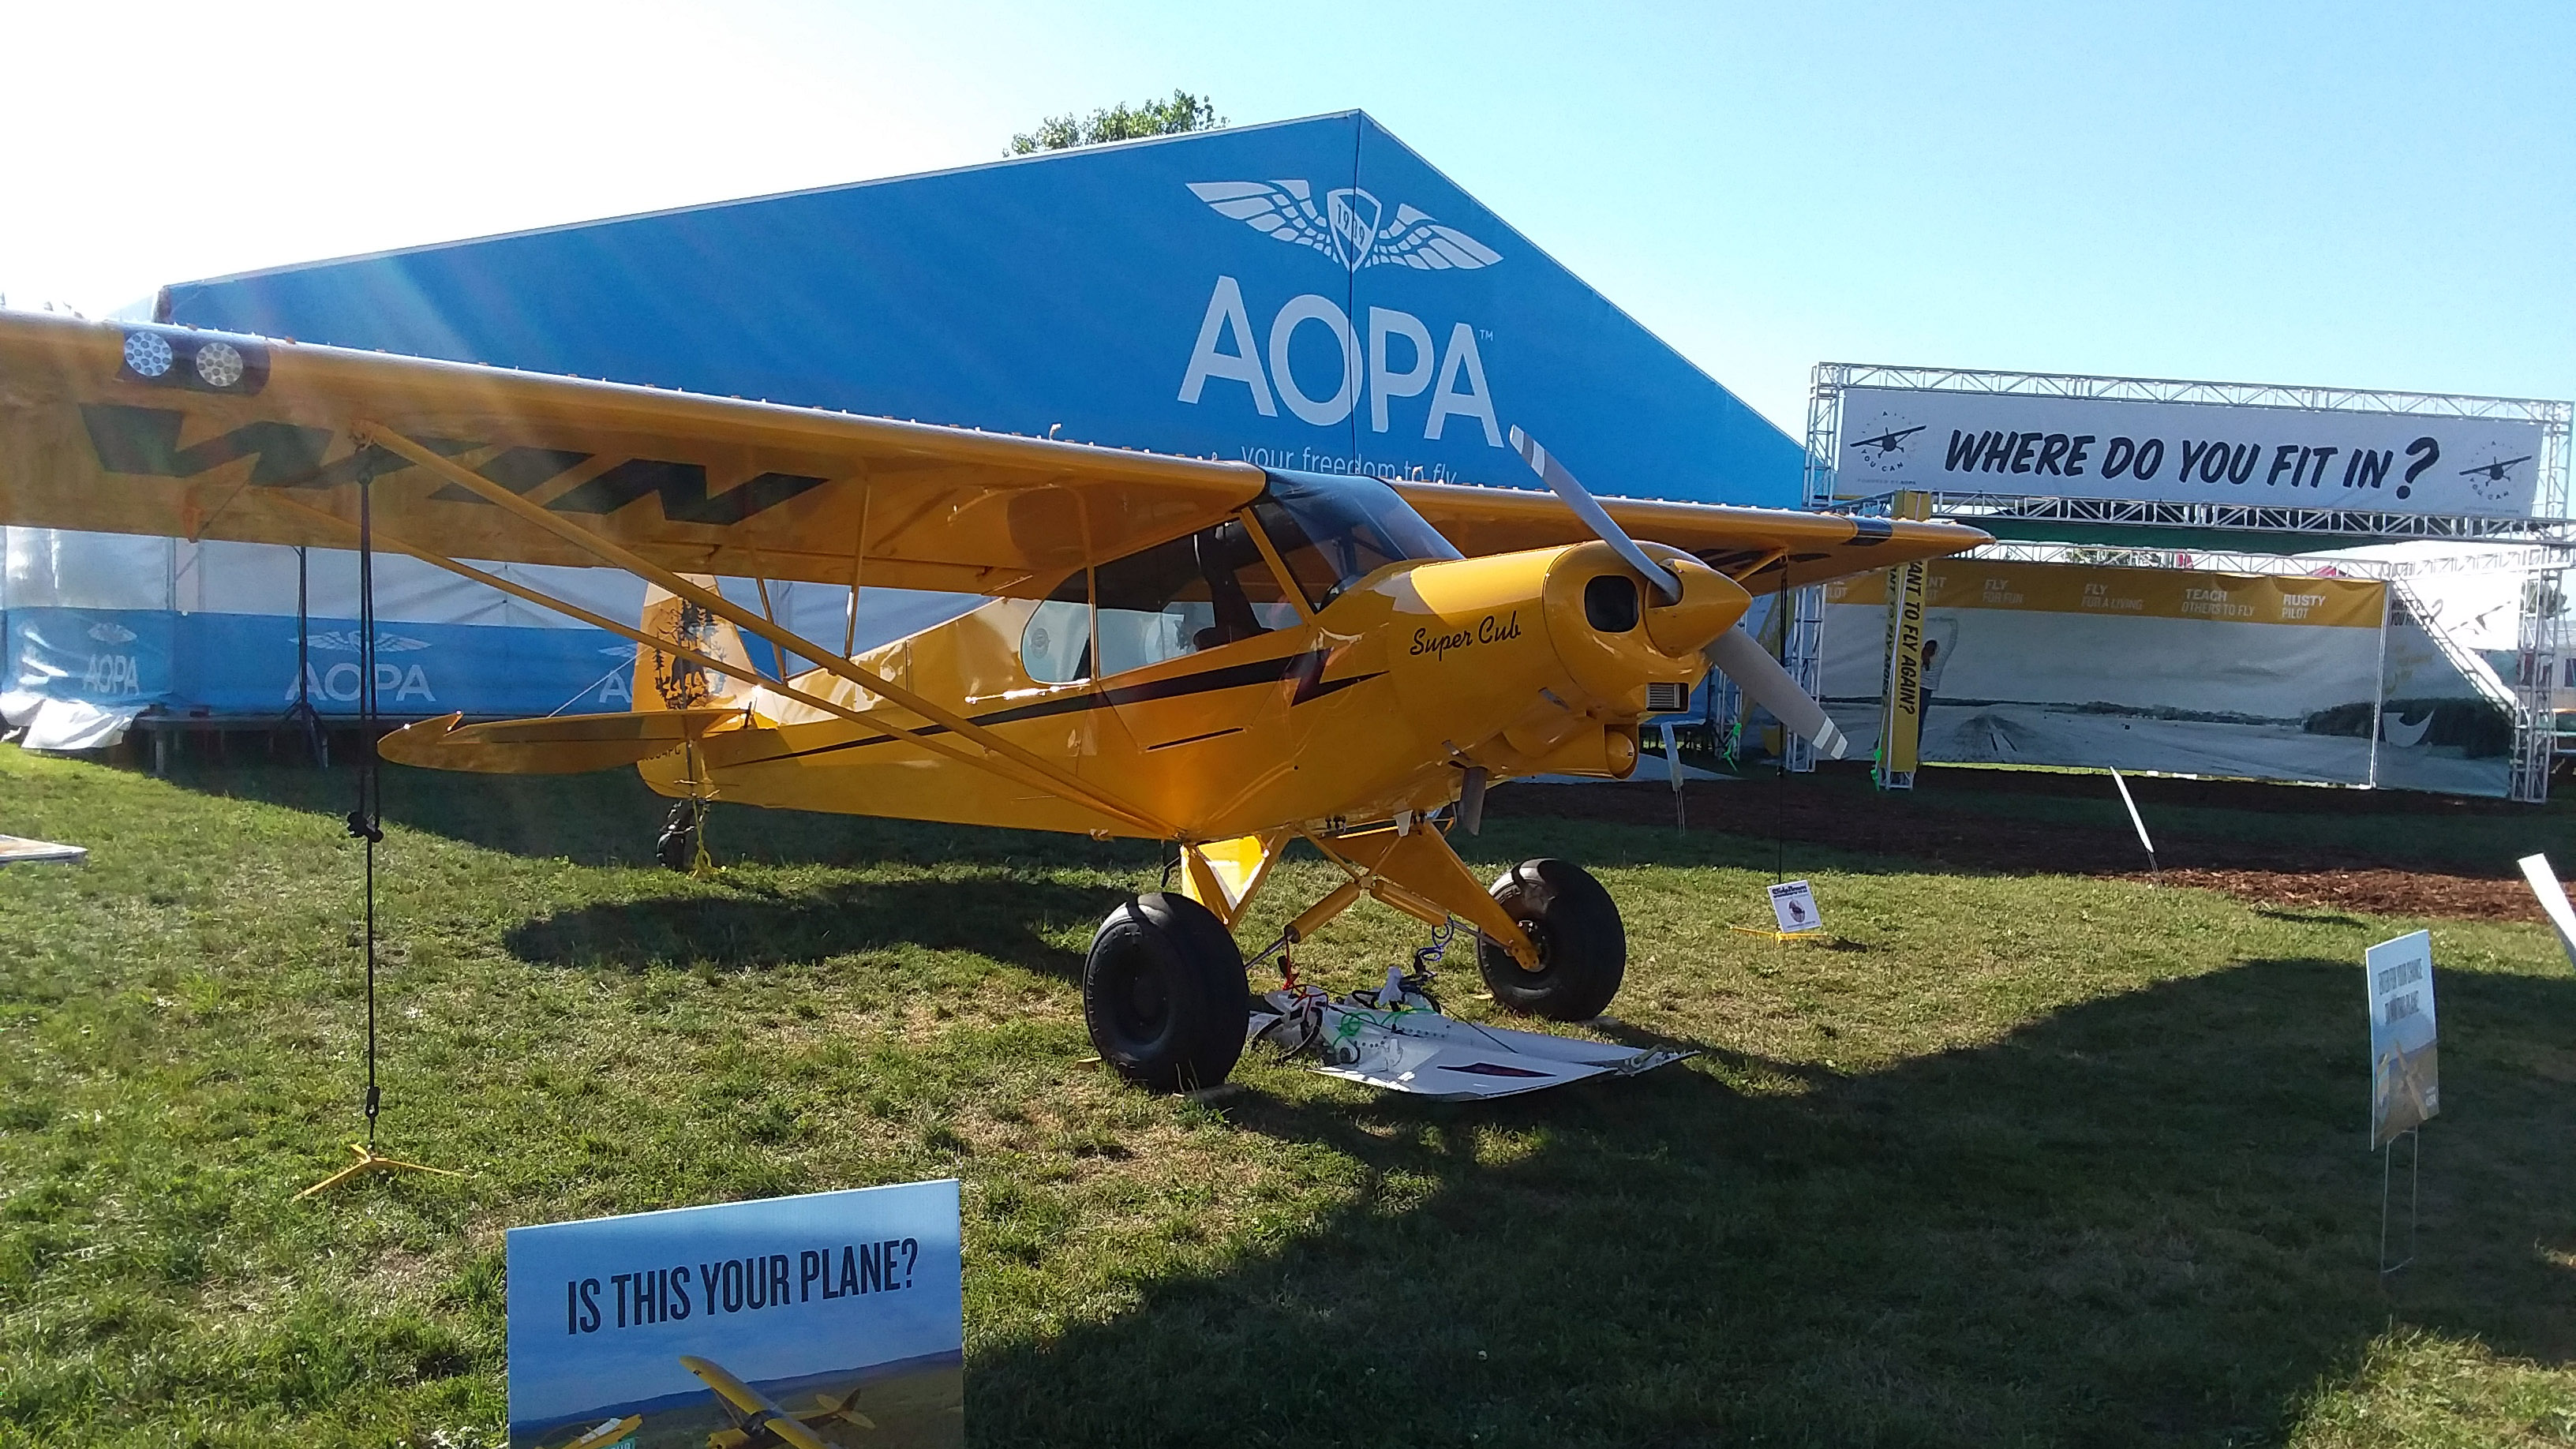 The AOPA Sweepstakes Super Cub is open for inspection at EAA AirVenture in Oshkosh, Wisconsin, and members love every inch of it. Photo by Alyssa Cobb.